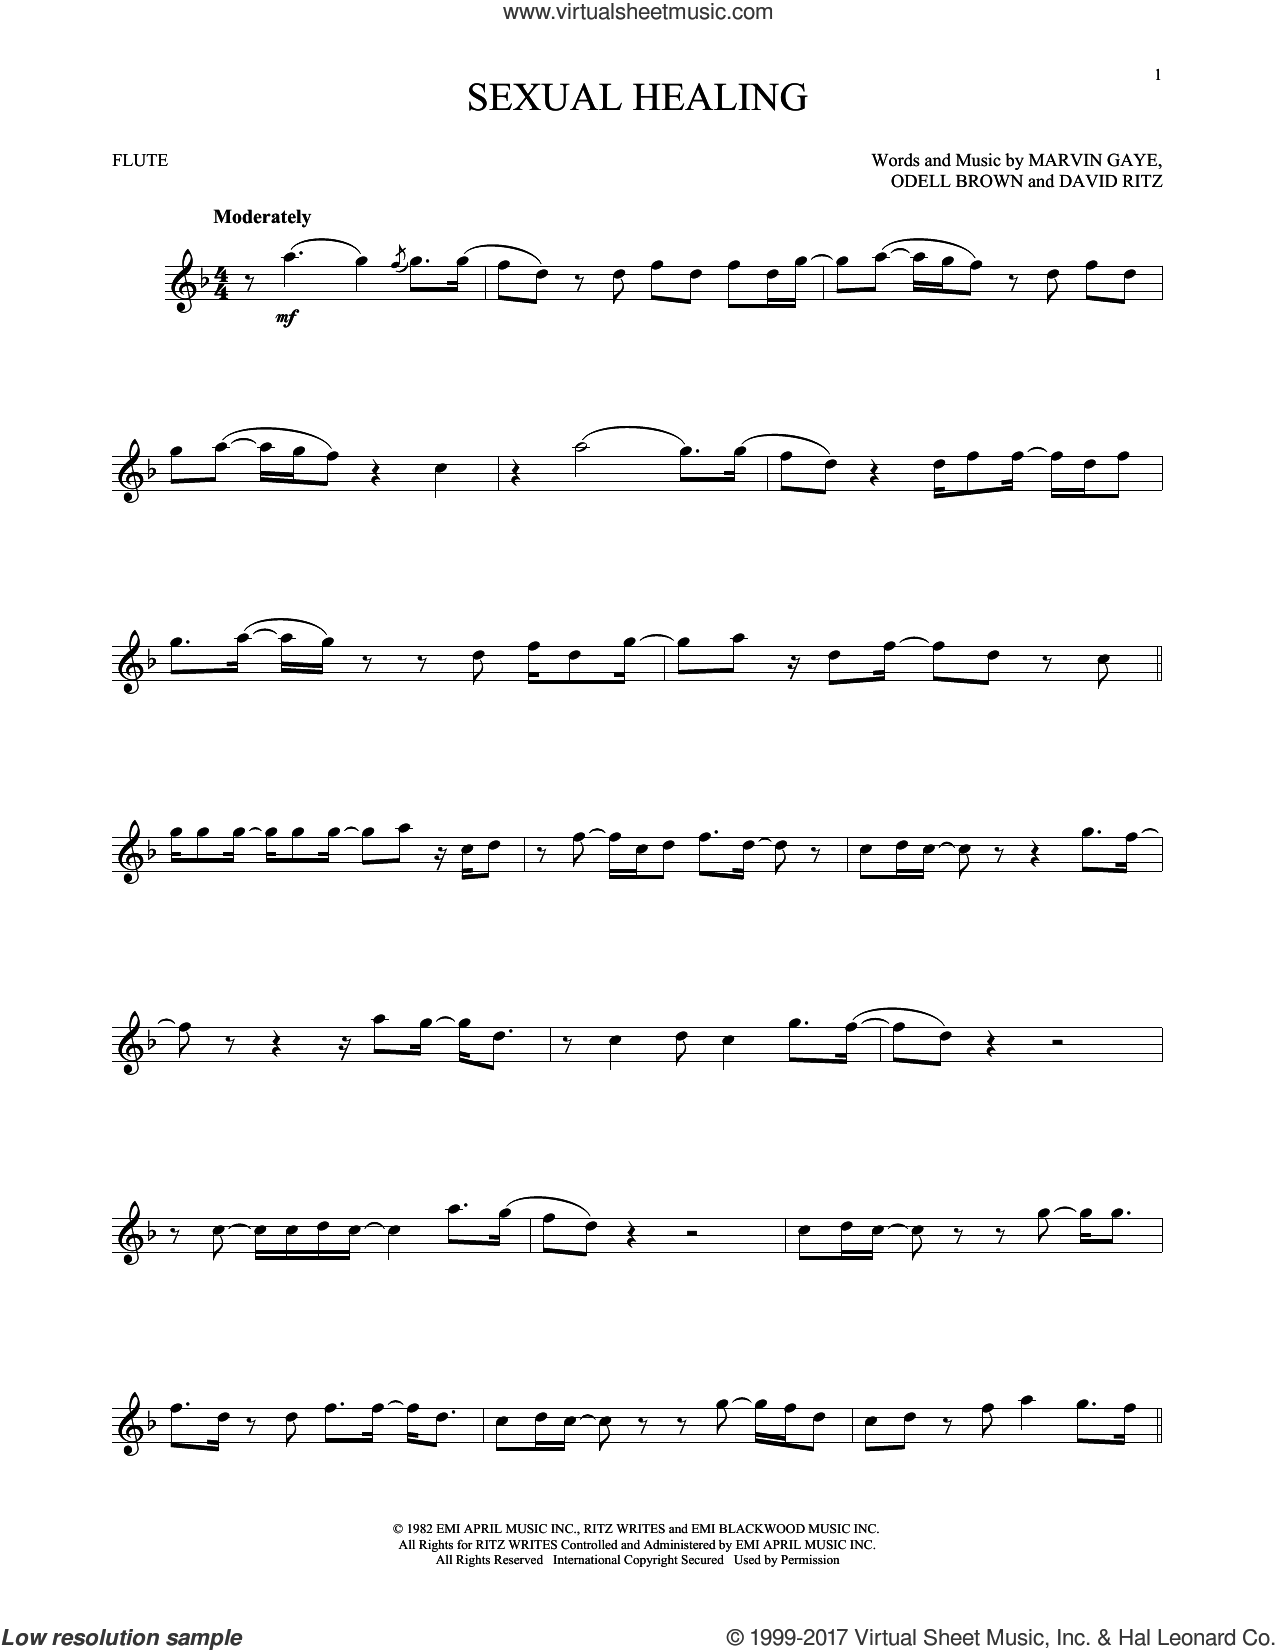 Sexual Healing sheet music for flute solo by Marvin Gaye, David Ritz and Odell Brown, intermediate skill level